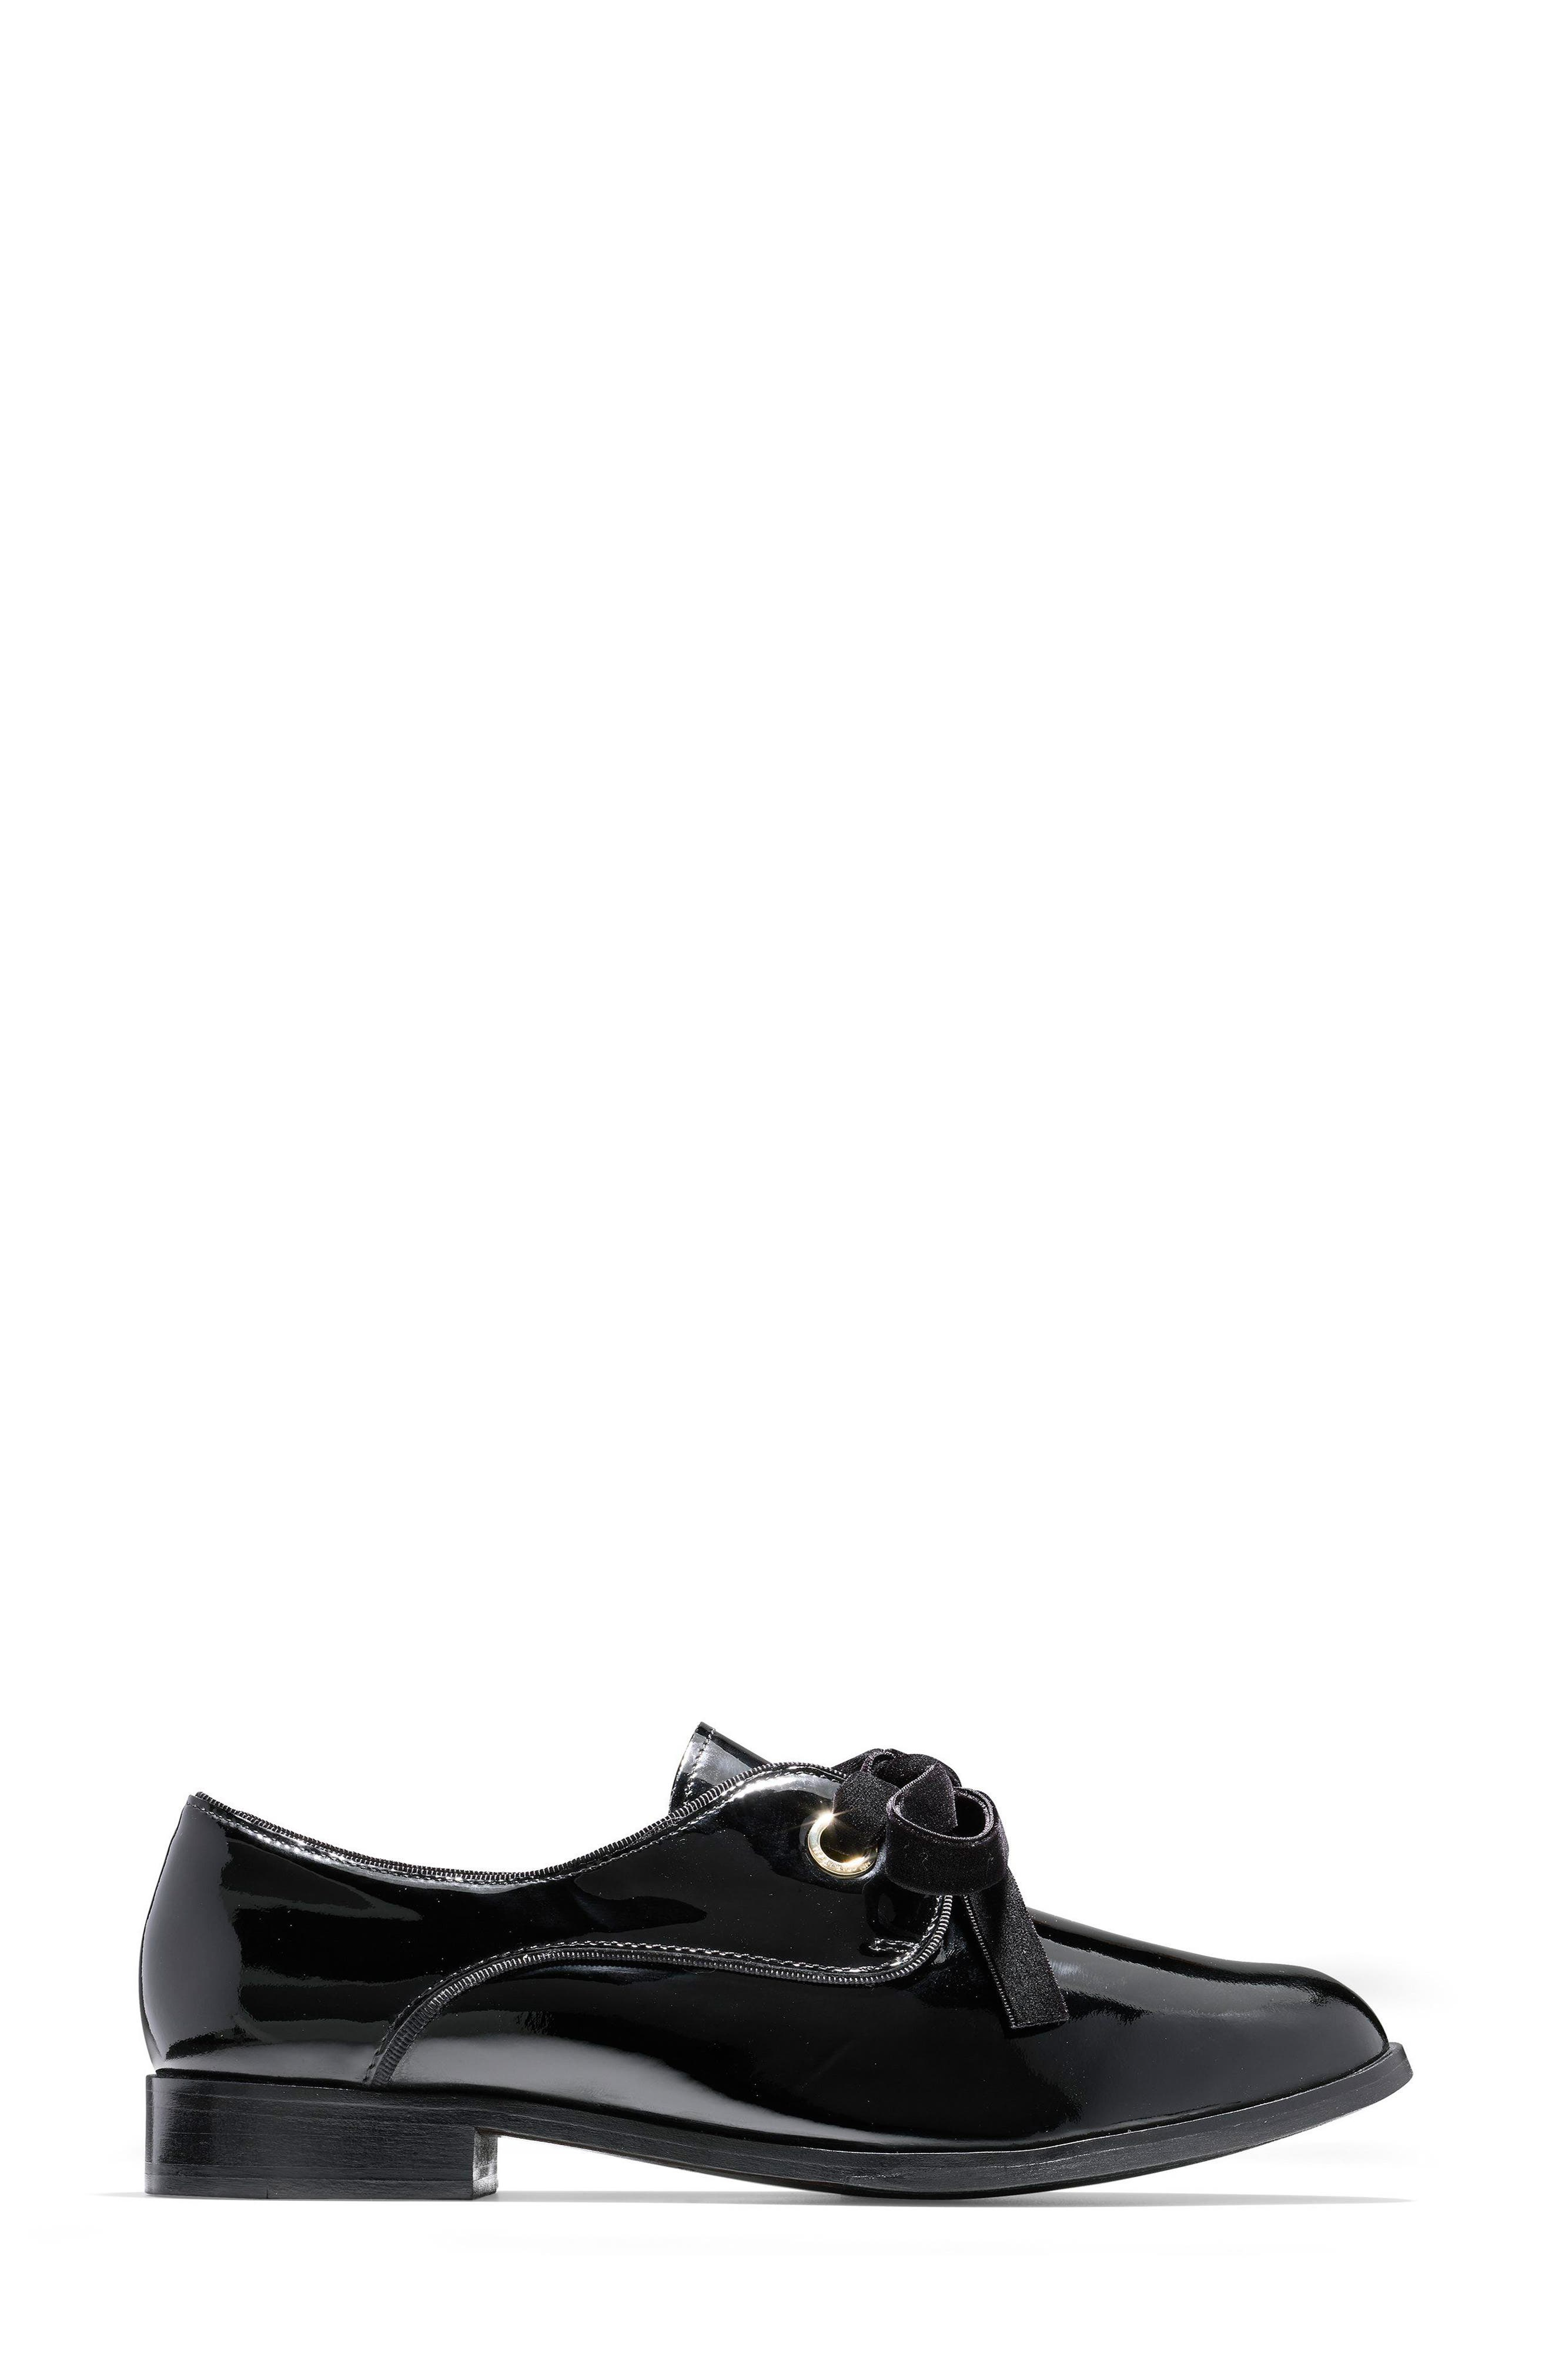 Jaylyn Oxford,                             Alternate thumbnail 3, color,                             Black Patent